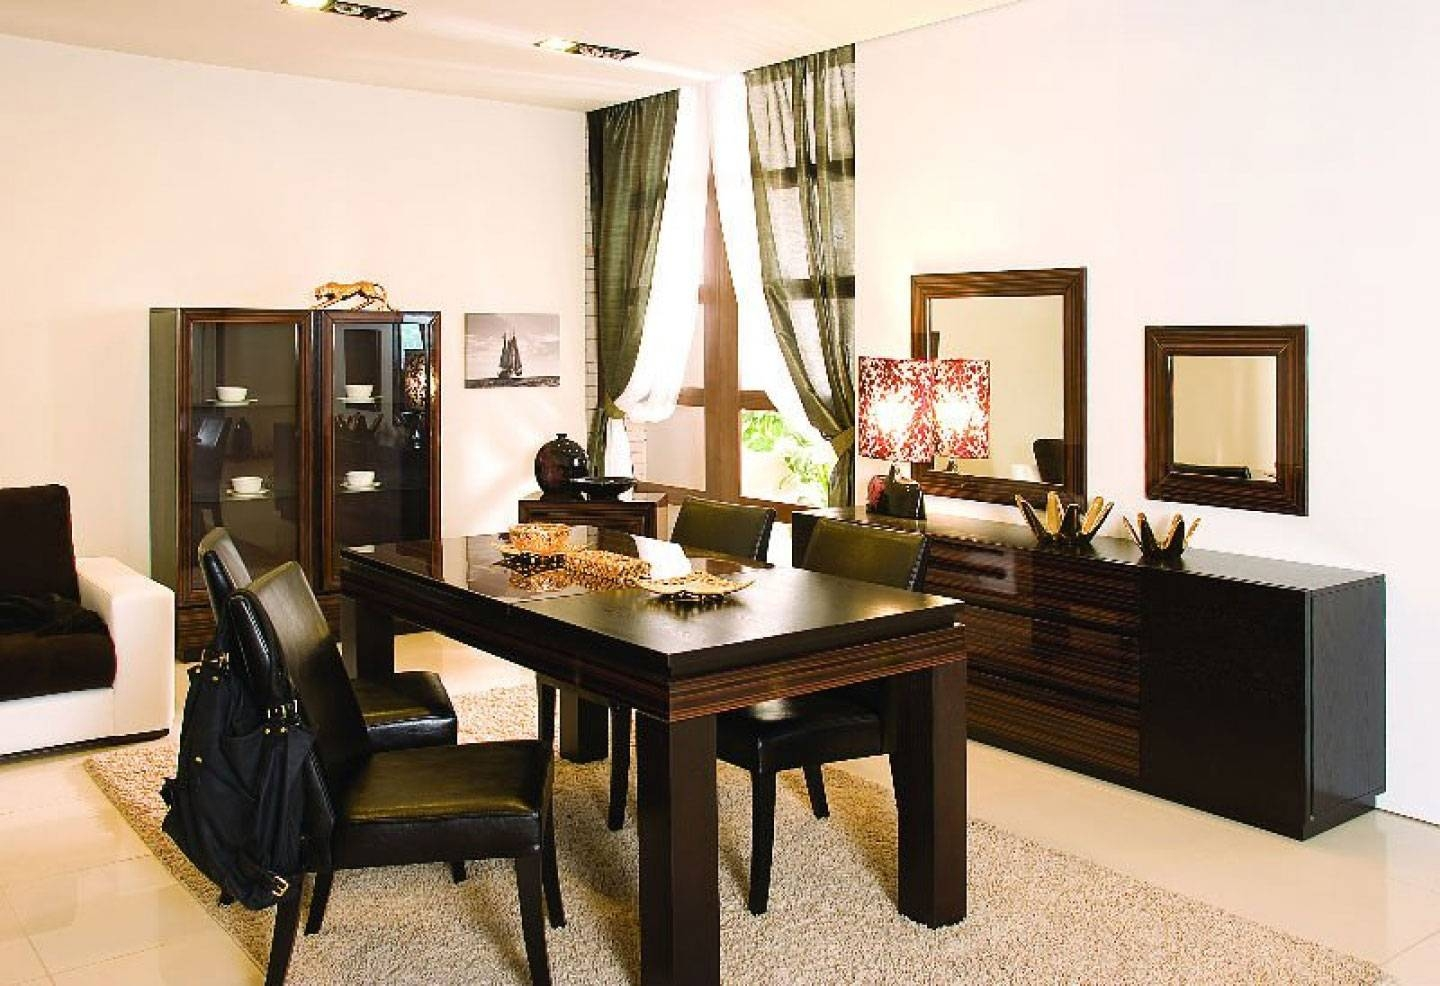 Classic Dining Room Table Set Bring Back Past Impression – Amaza With 2017 Dining Room Table Chairs And Sideboards (View 4 of 15)